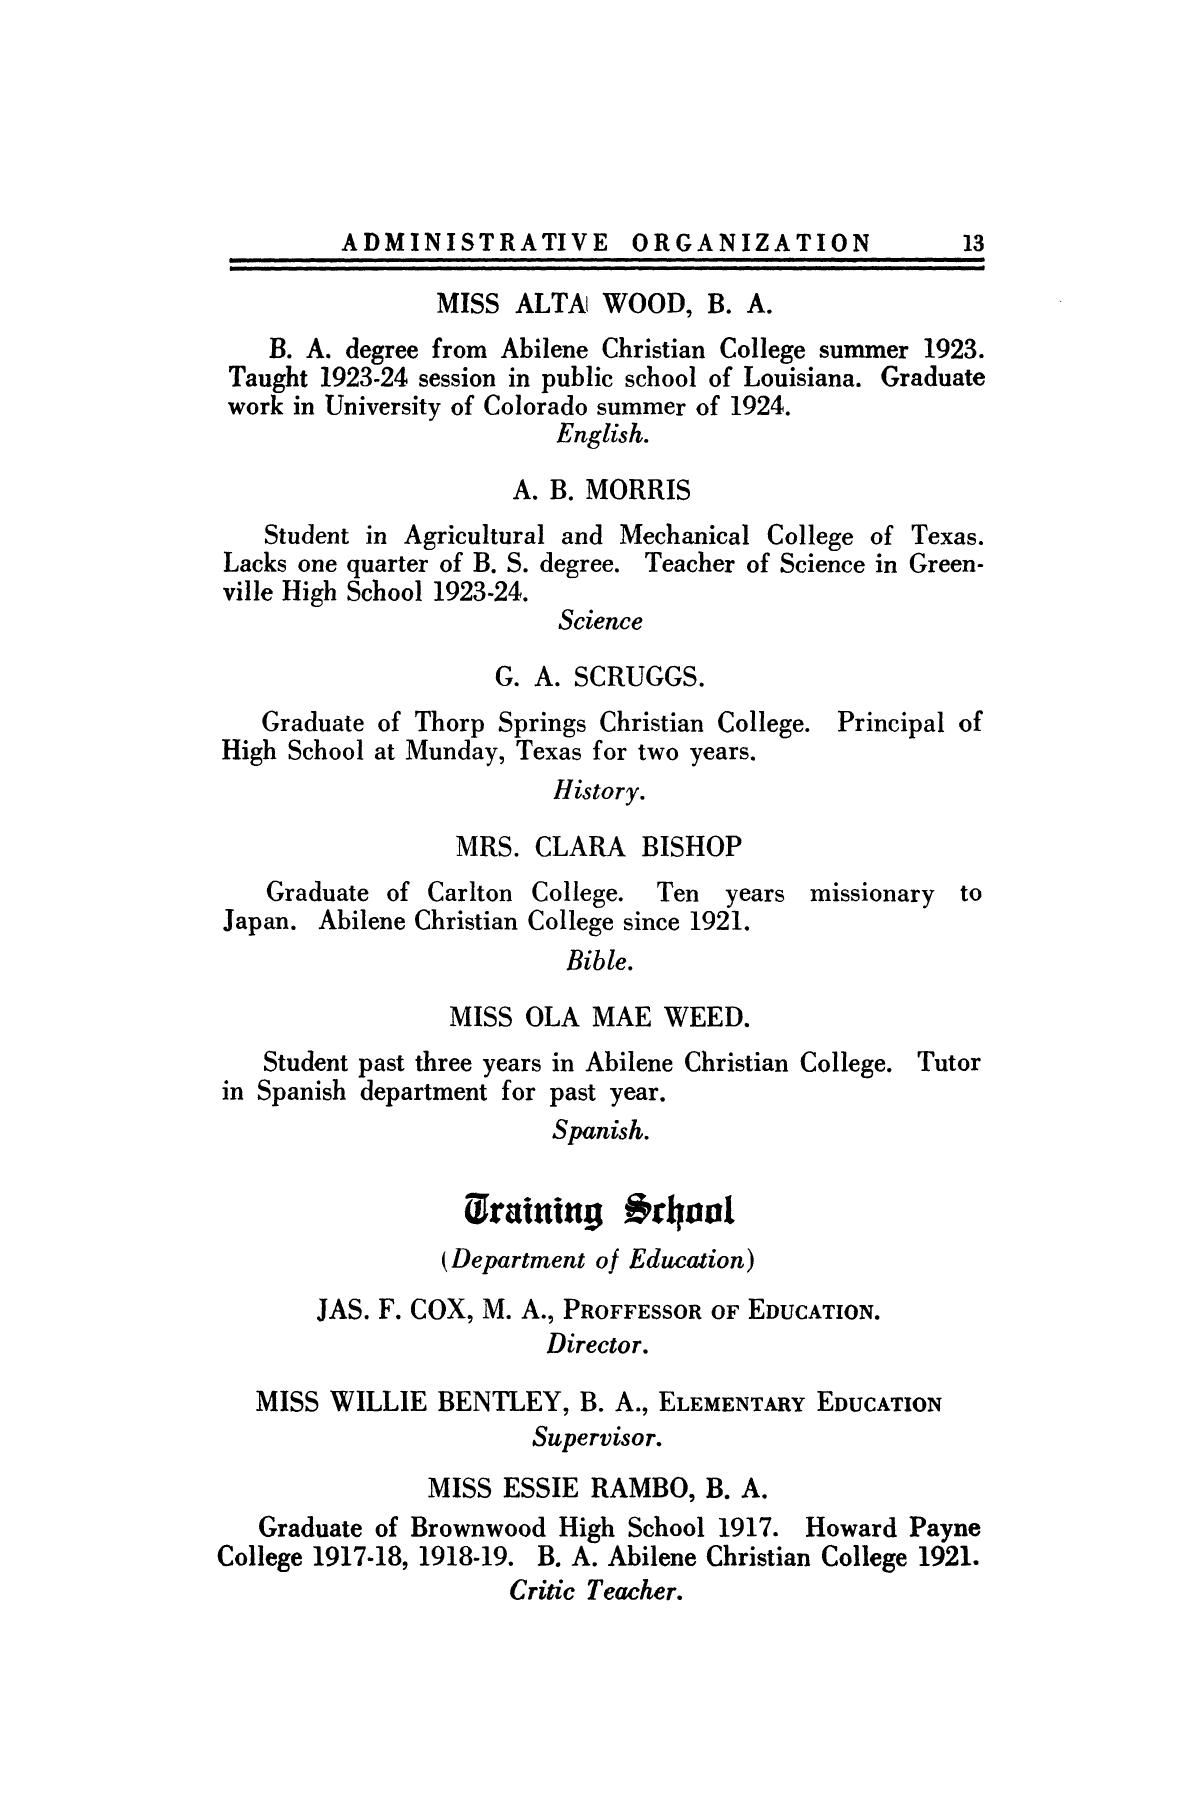 Catalog of Abilene Christian College, 1924-1925                                                                                                      13